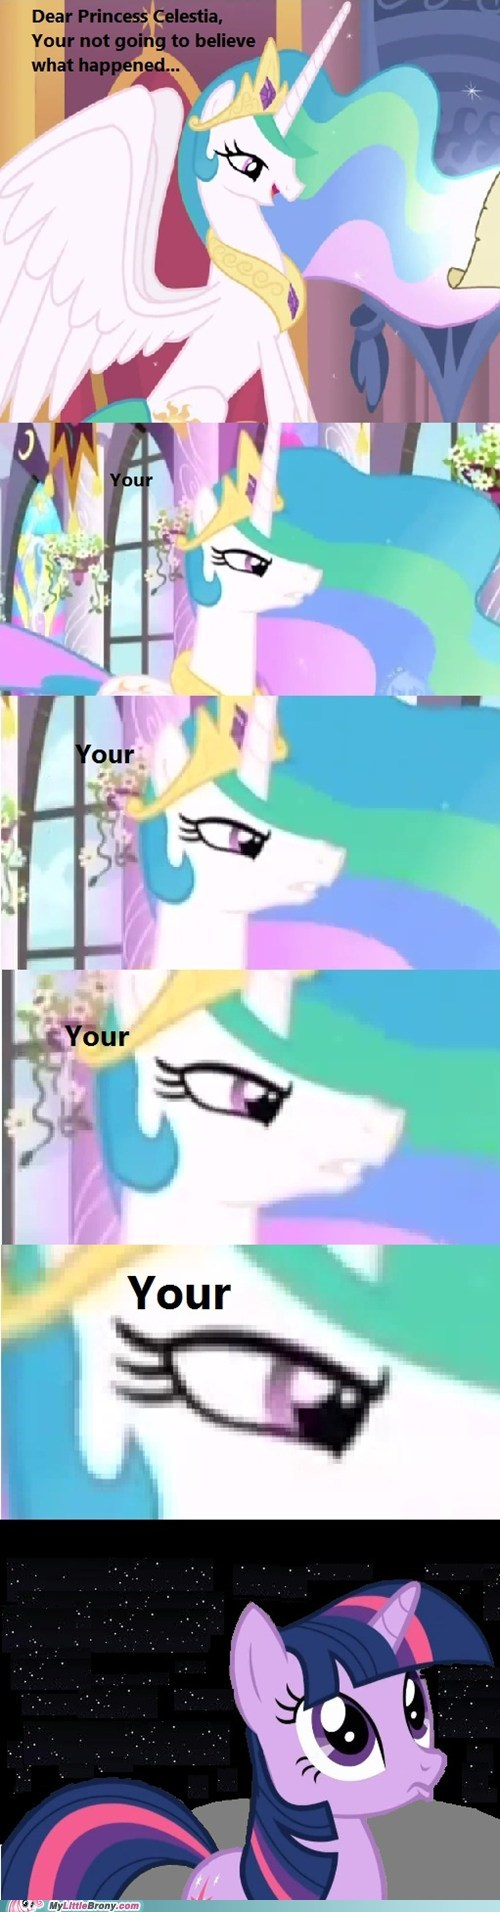 banished,comics,grammer,letter to celestia,to the moon,your,youre